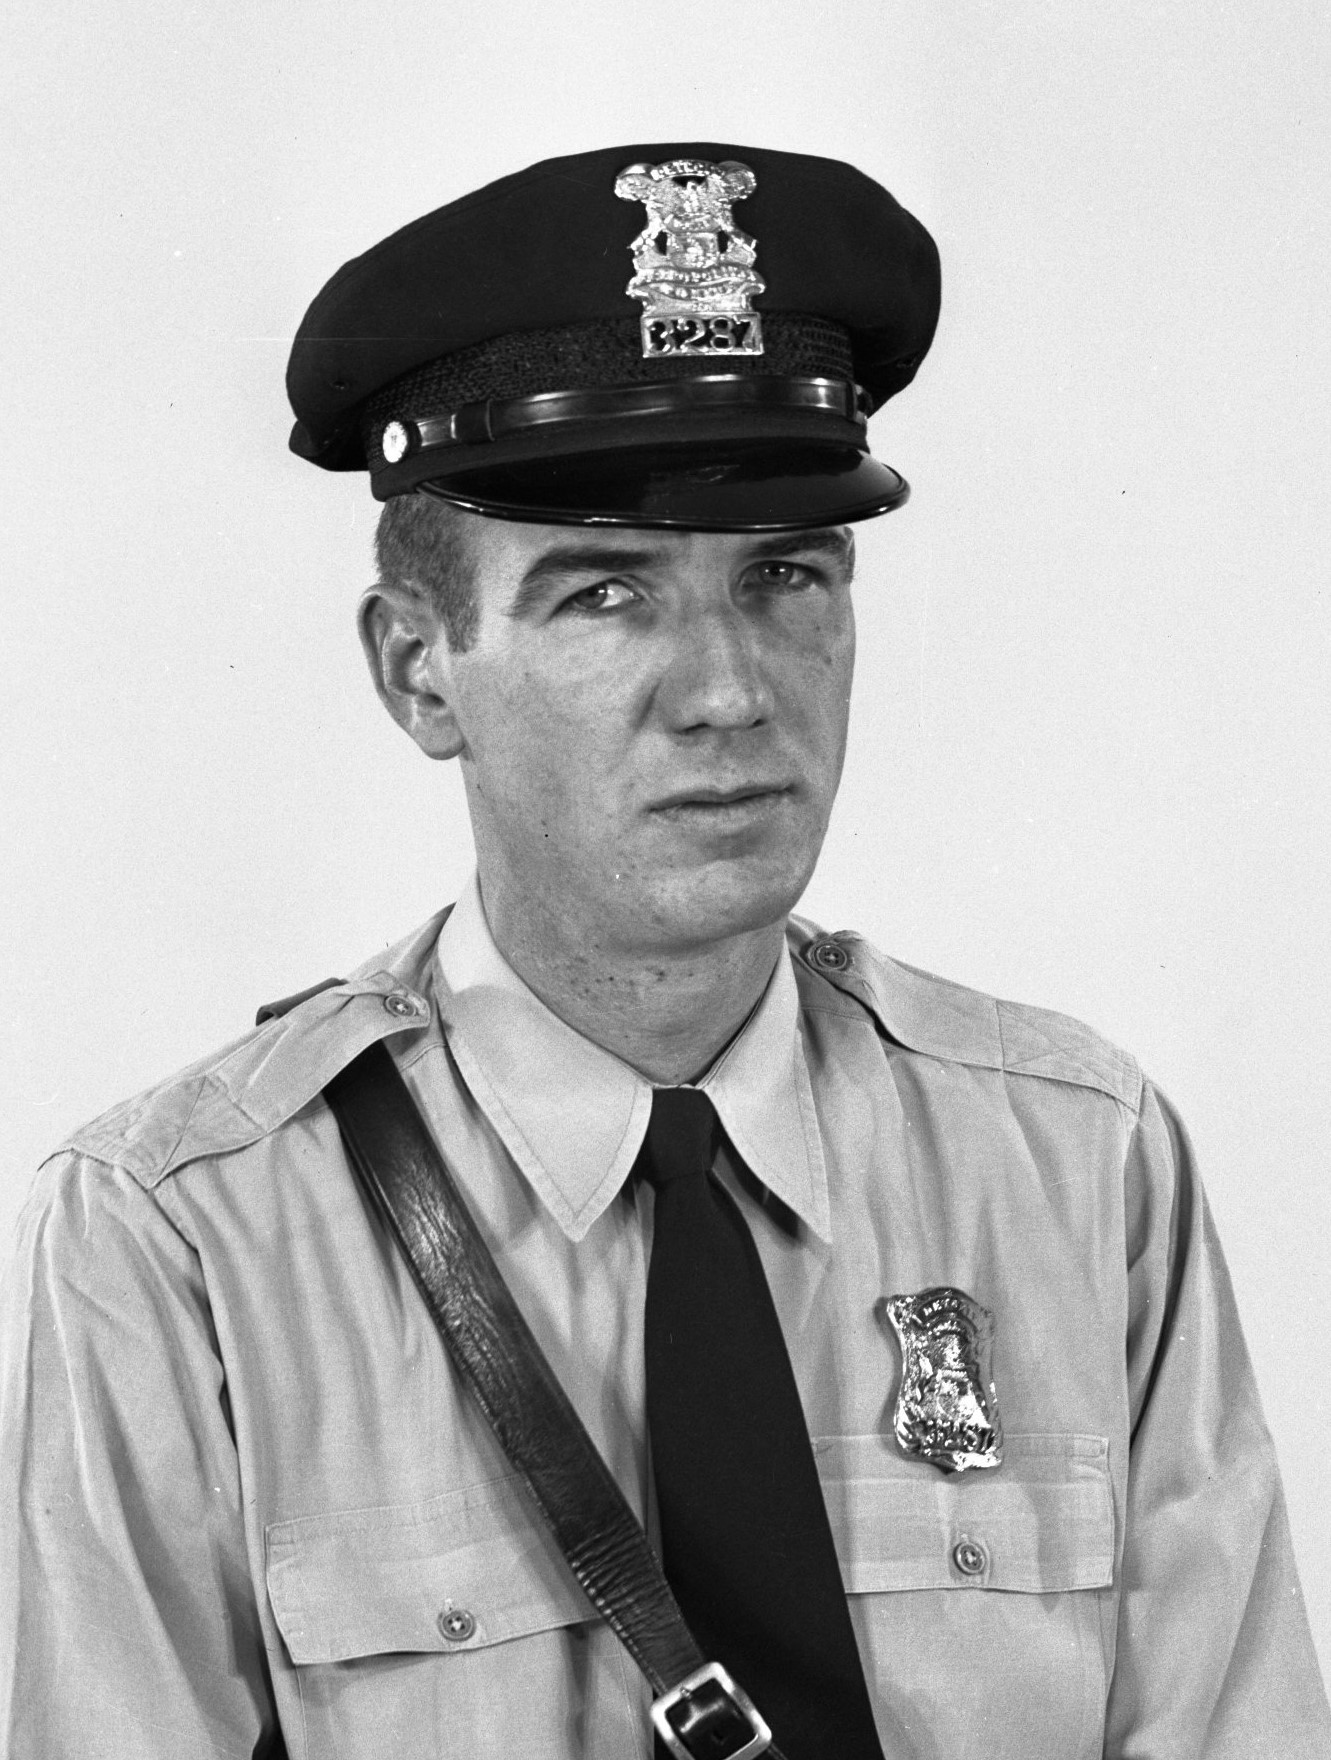 Police Officer Harold F. Tullke | Detroit Police Department, Michigan